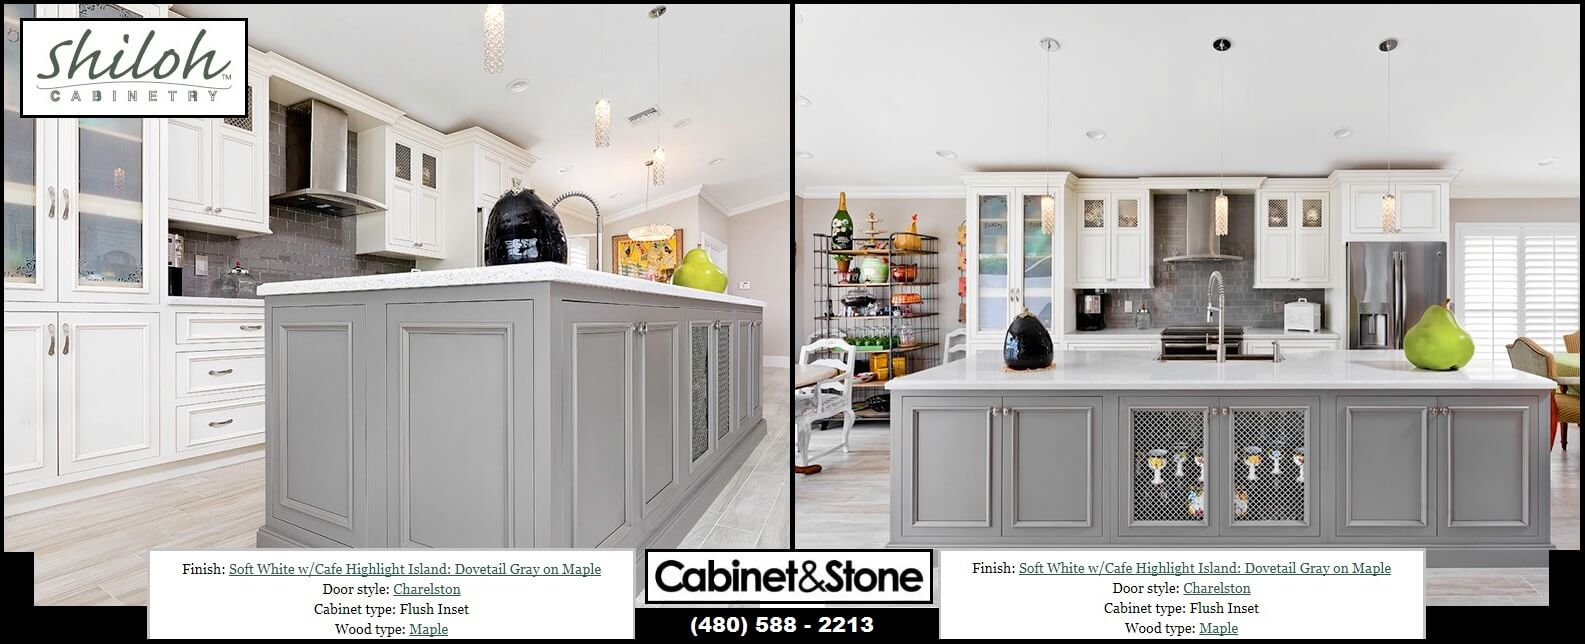 Attrayant Stop In Our Showroom Located At 14224 N. Scottsdale Rd, Suite 175  Scottsdale AZ, 85254 And Take A Look At Our Selection Of Kitchen U0026 Bath  Cabinets, ...